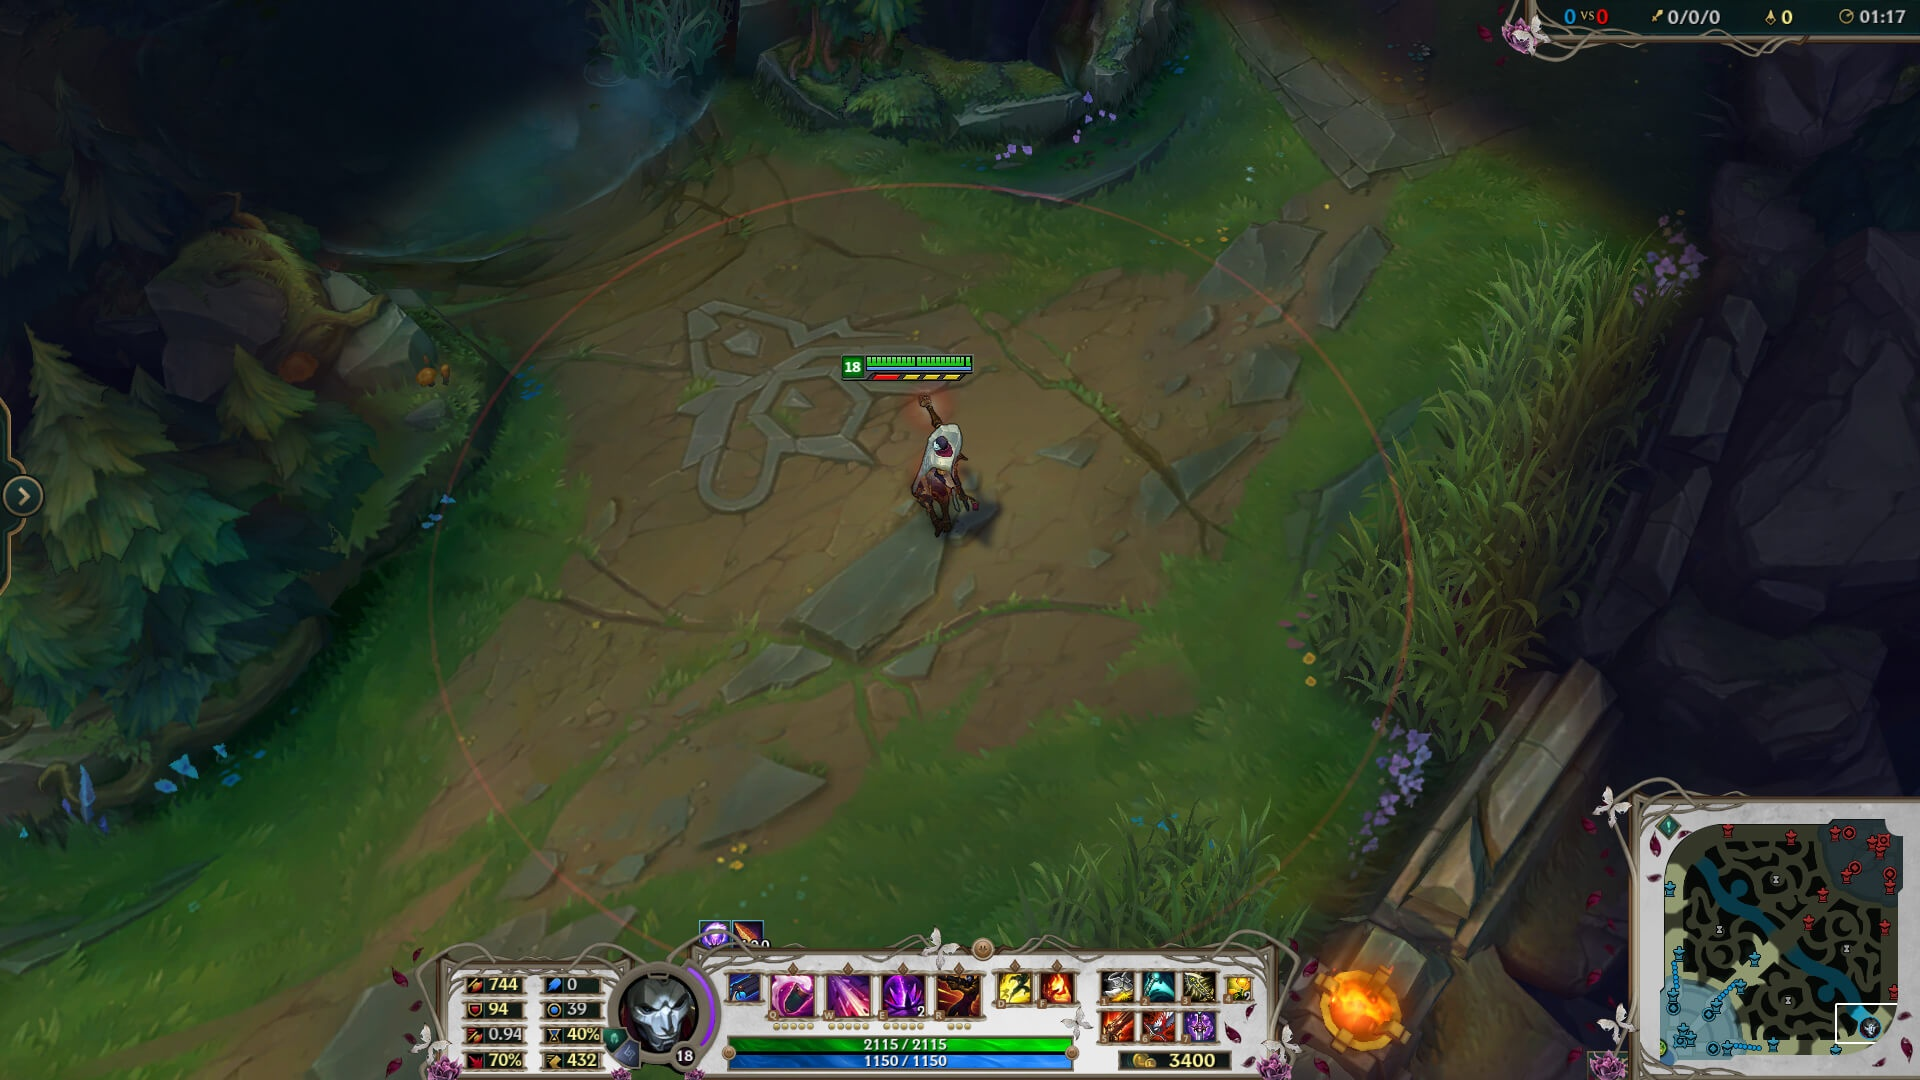 JHIN THE VIRTUOSE - STREAM OVERLAY